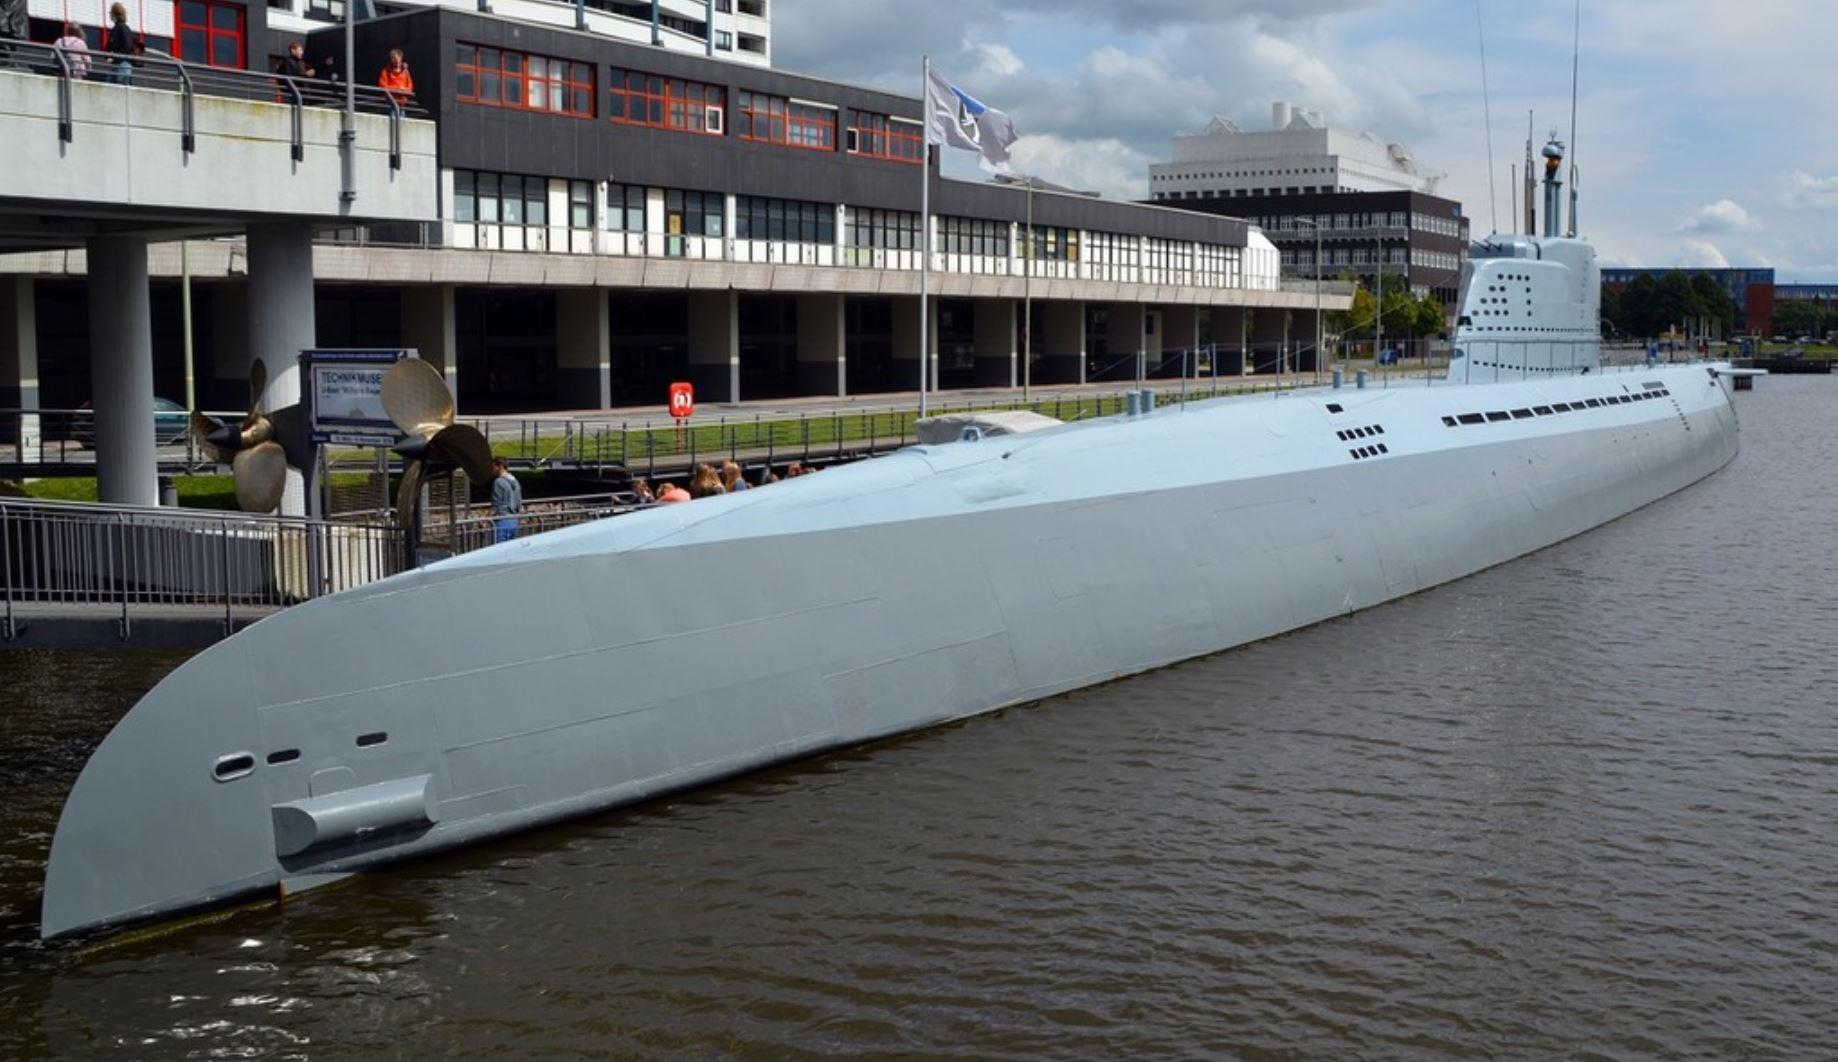 The last of the U-boats is scuttled